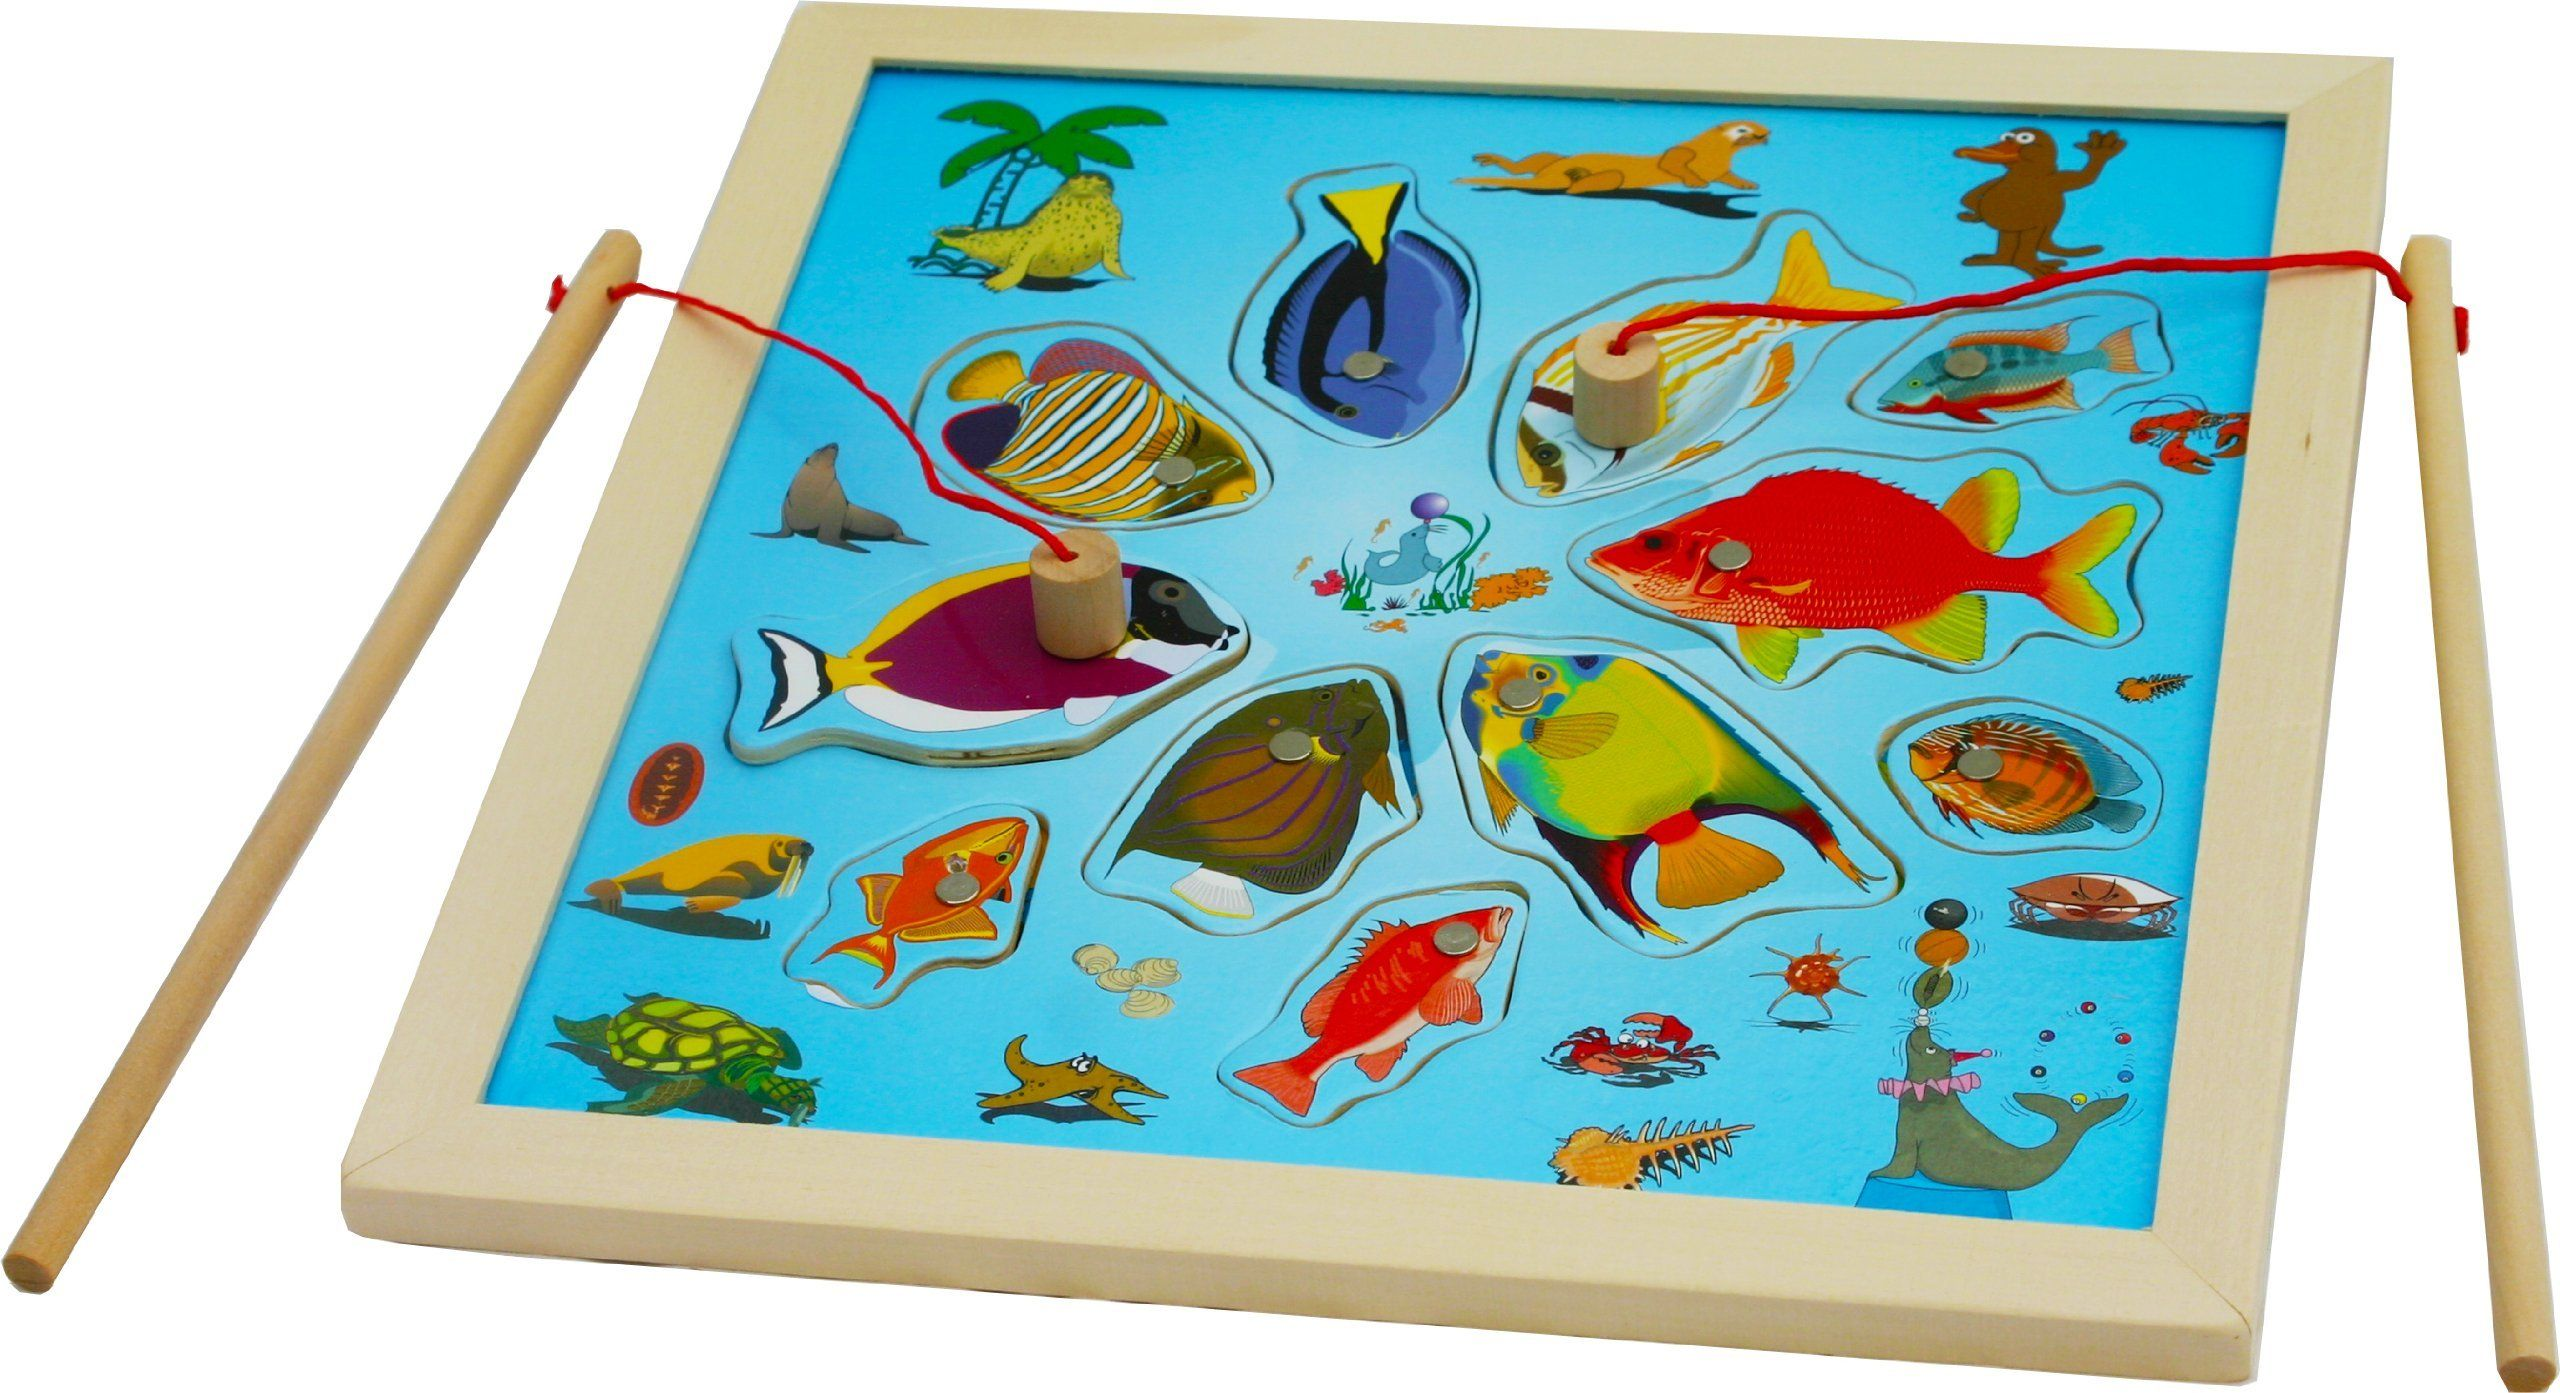 Toys of Wood Oxford Wooden Fishing Game Jigsaw